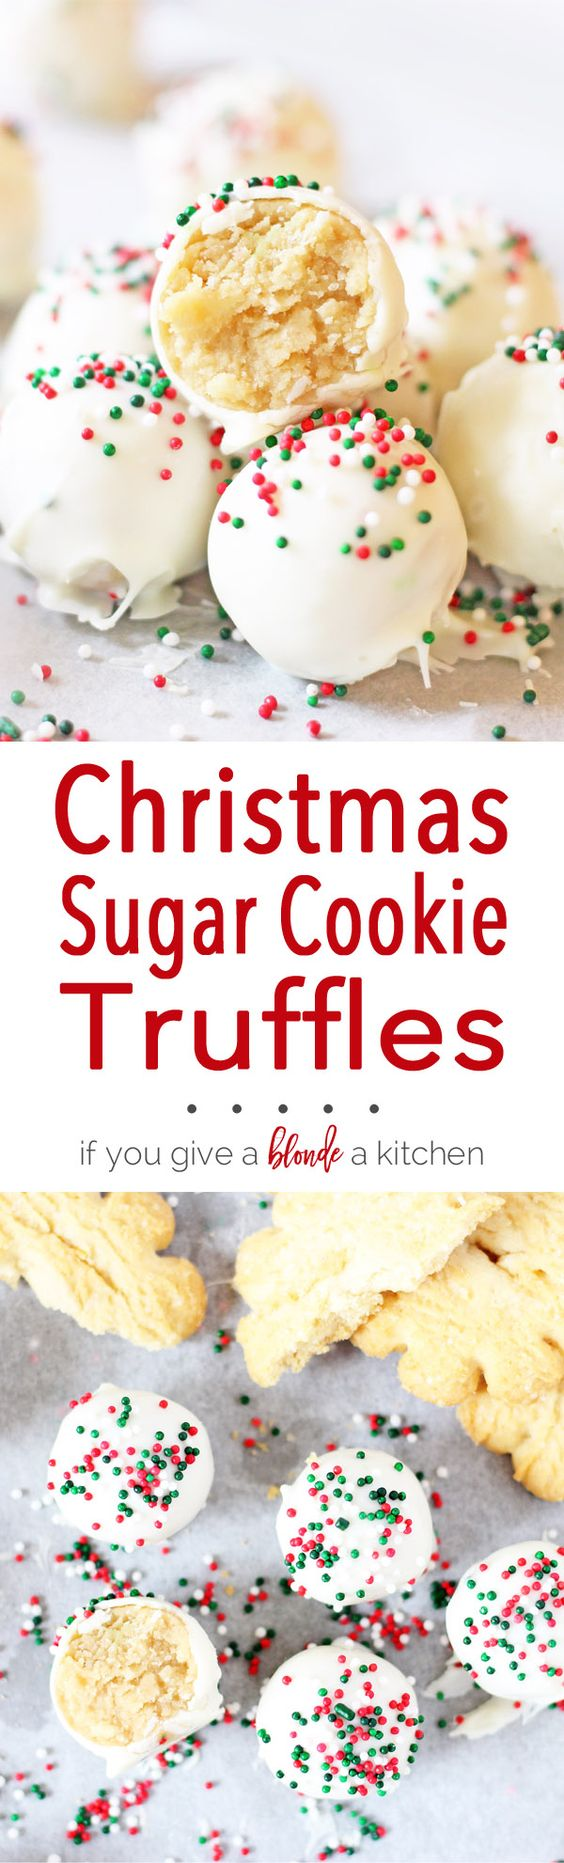 Christmas Sugar Cookie Truffles Recipe via If You Give a Blonde a Kitchen - These are a must-try this Christmas! NO-Bake sugar cookies, cream cheese and white chocolate perfection! #chrstmascookies #christmascandy #christmastreats #holidaydesserts #holidayrecipes #christmascandies #holidaygiftplates